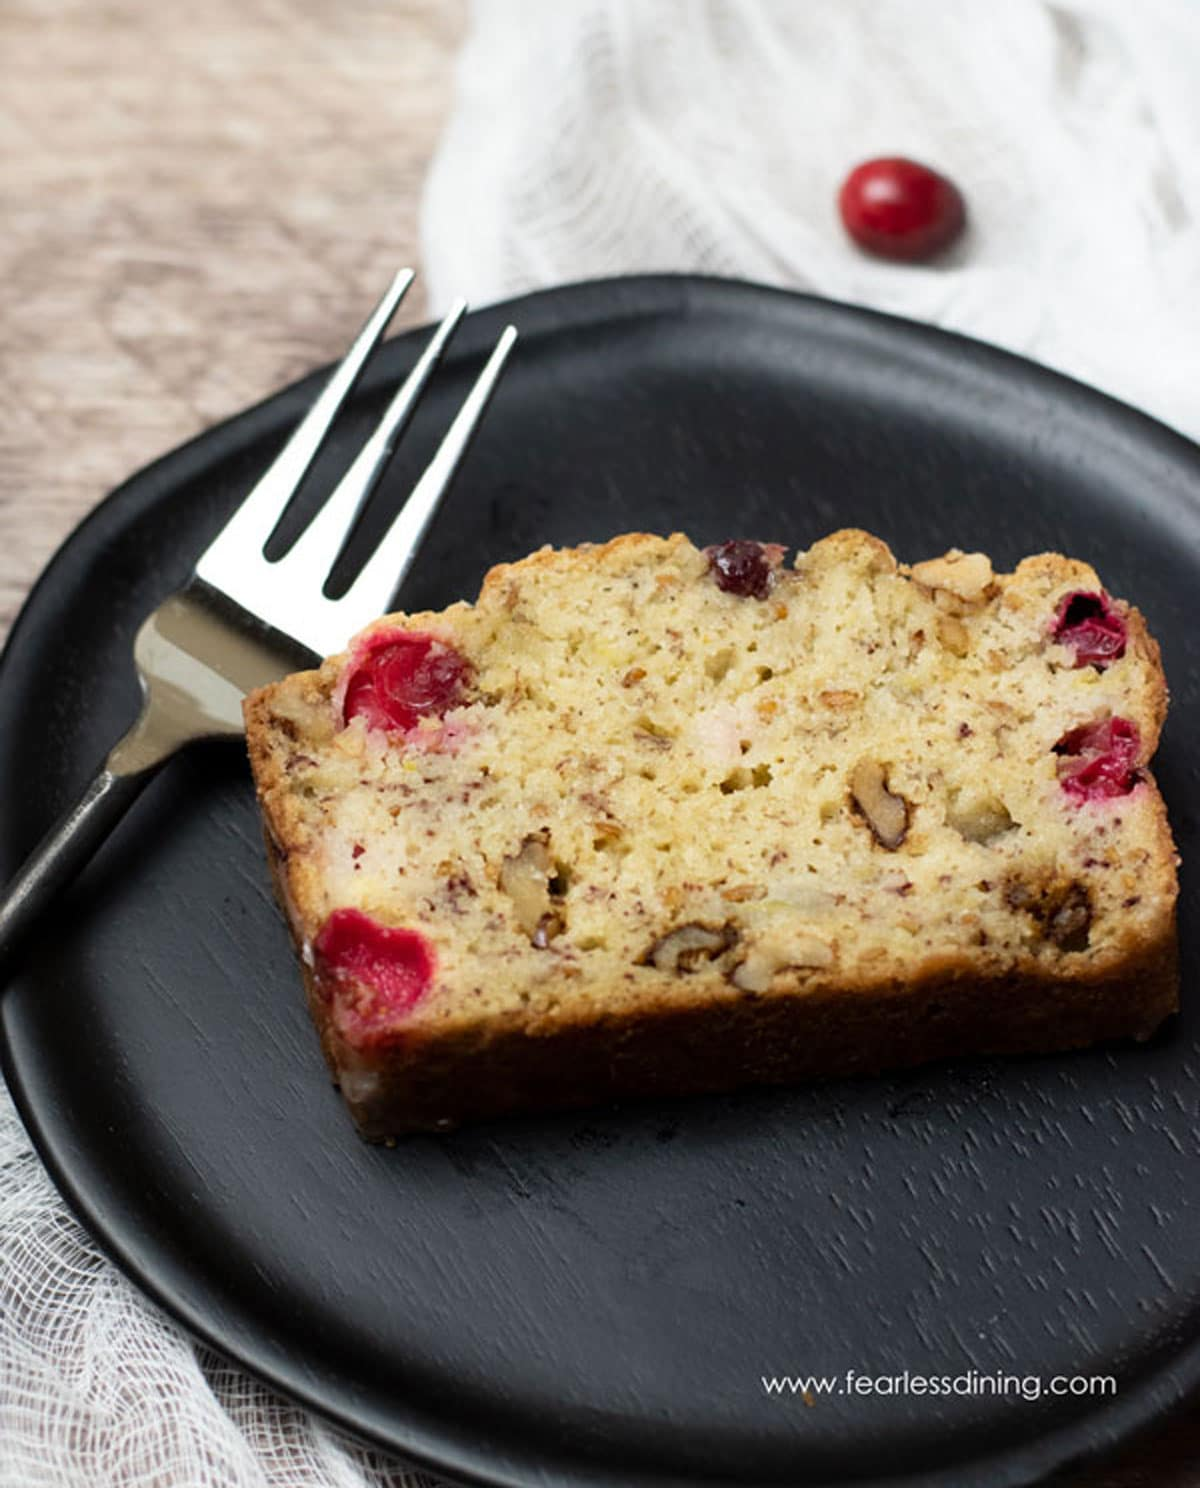 a slice of cranberry banana bread on a wooden plate